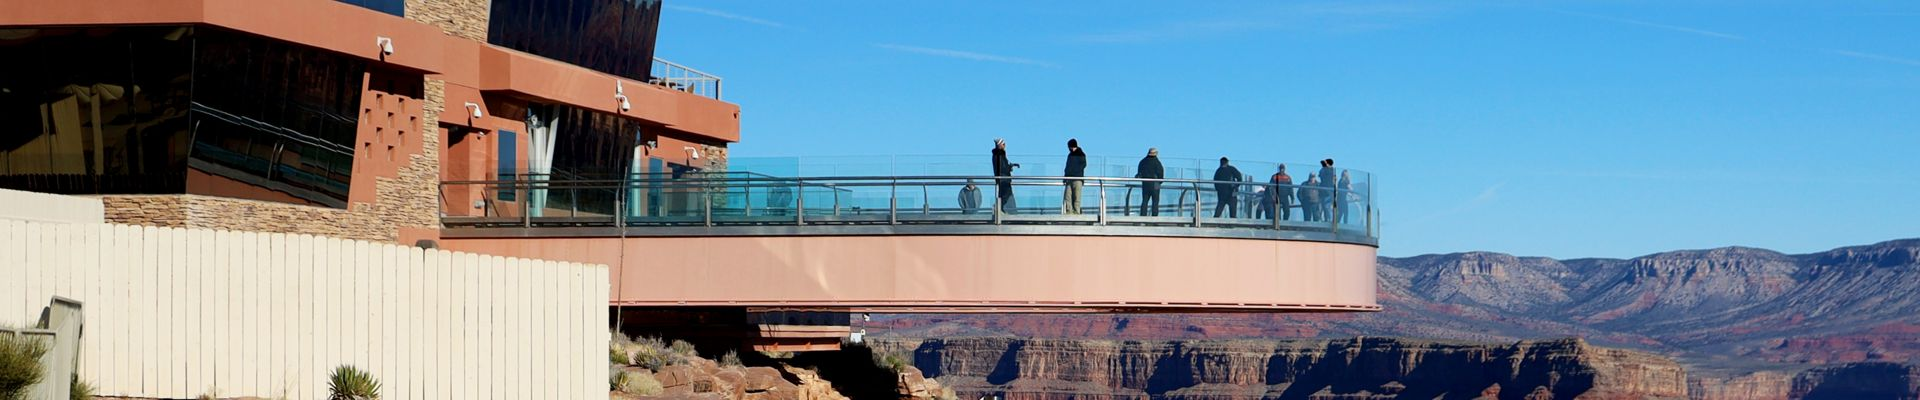 The Grand Canyon West with the Skywalk Bridge in the foreground.